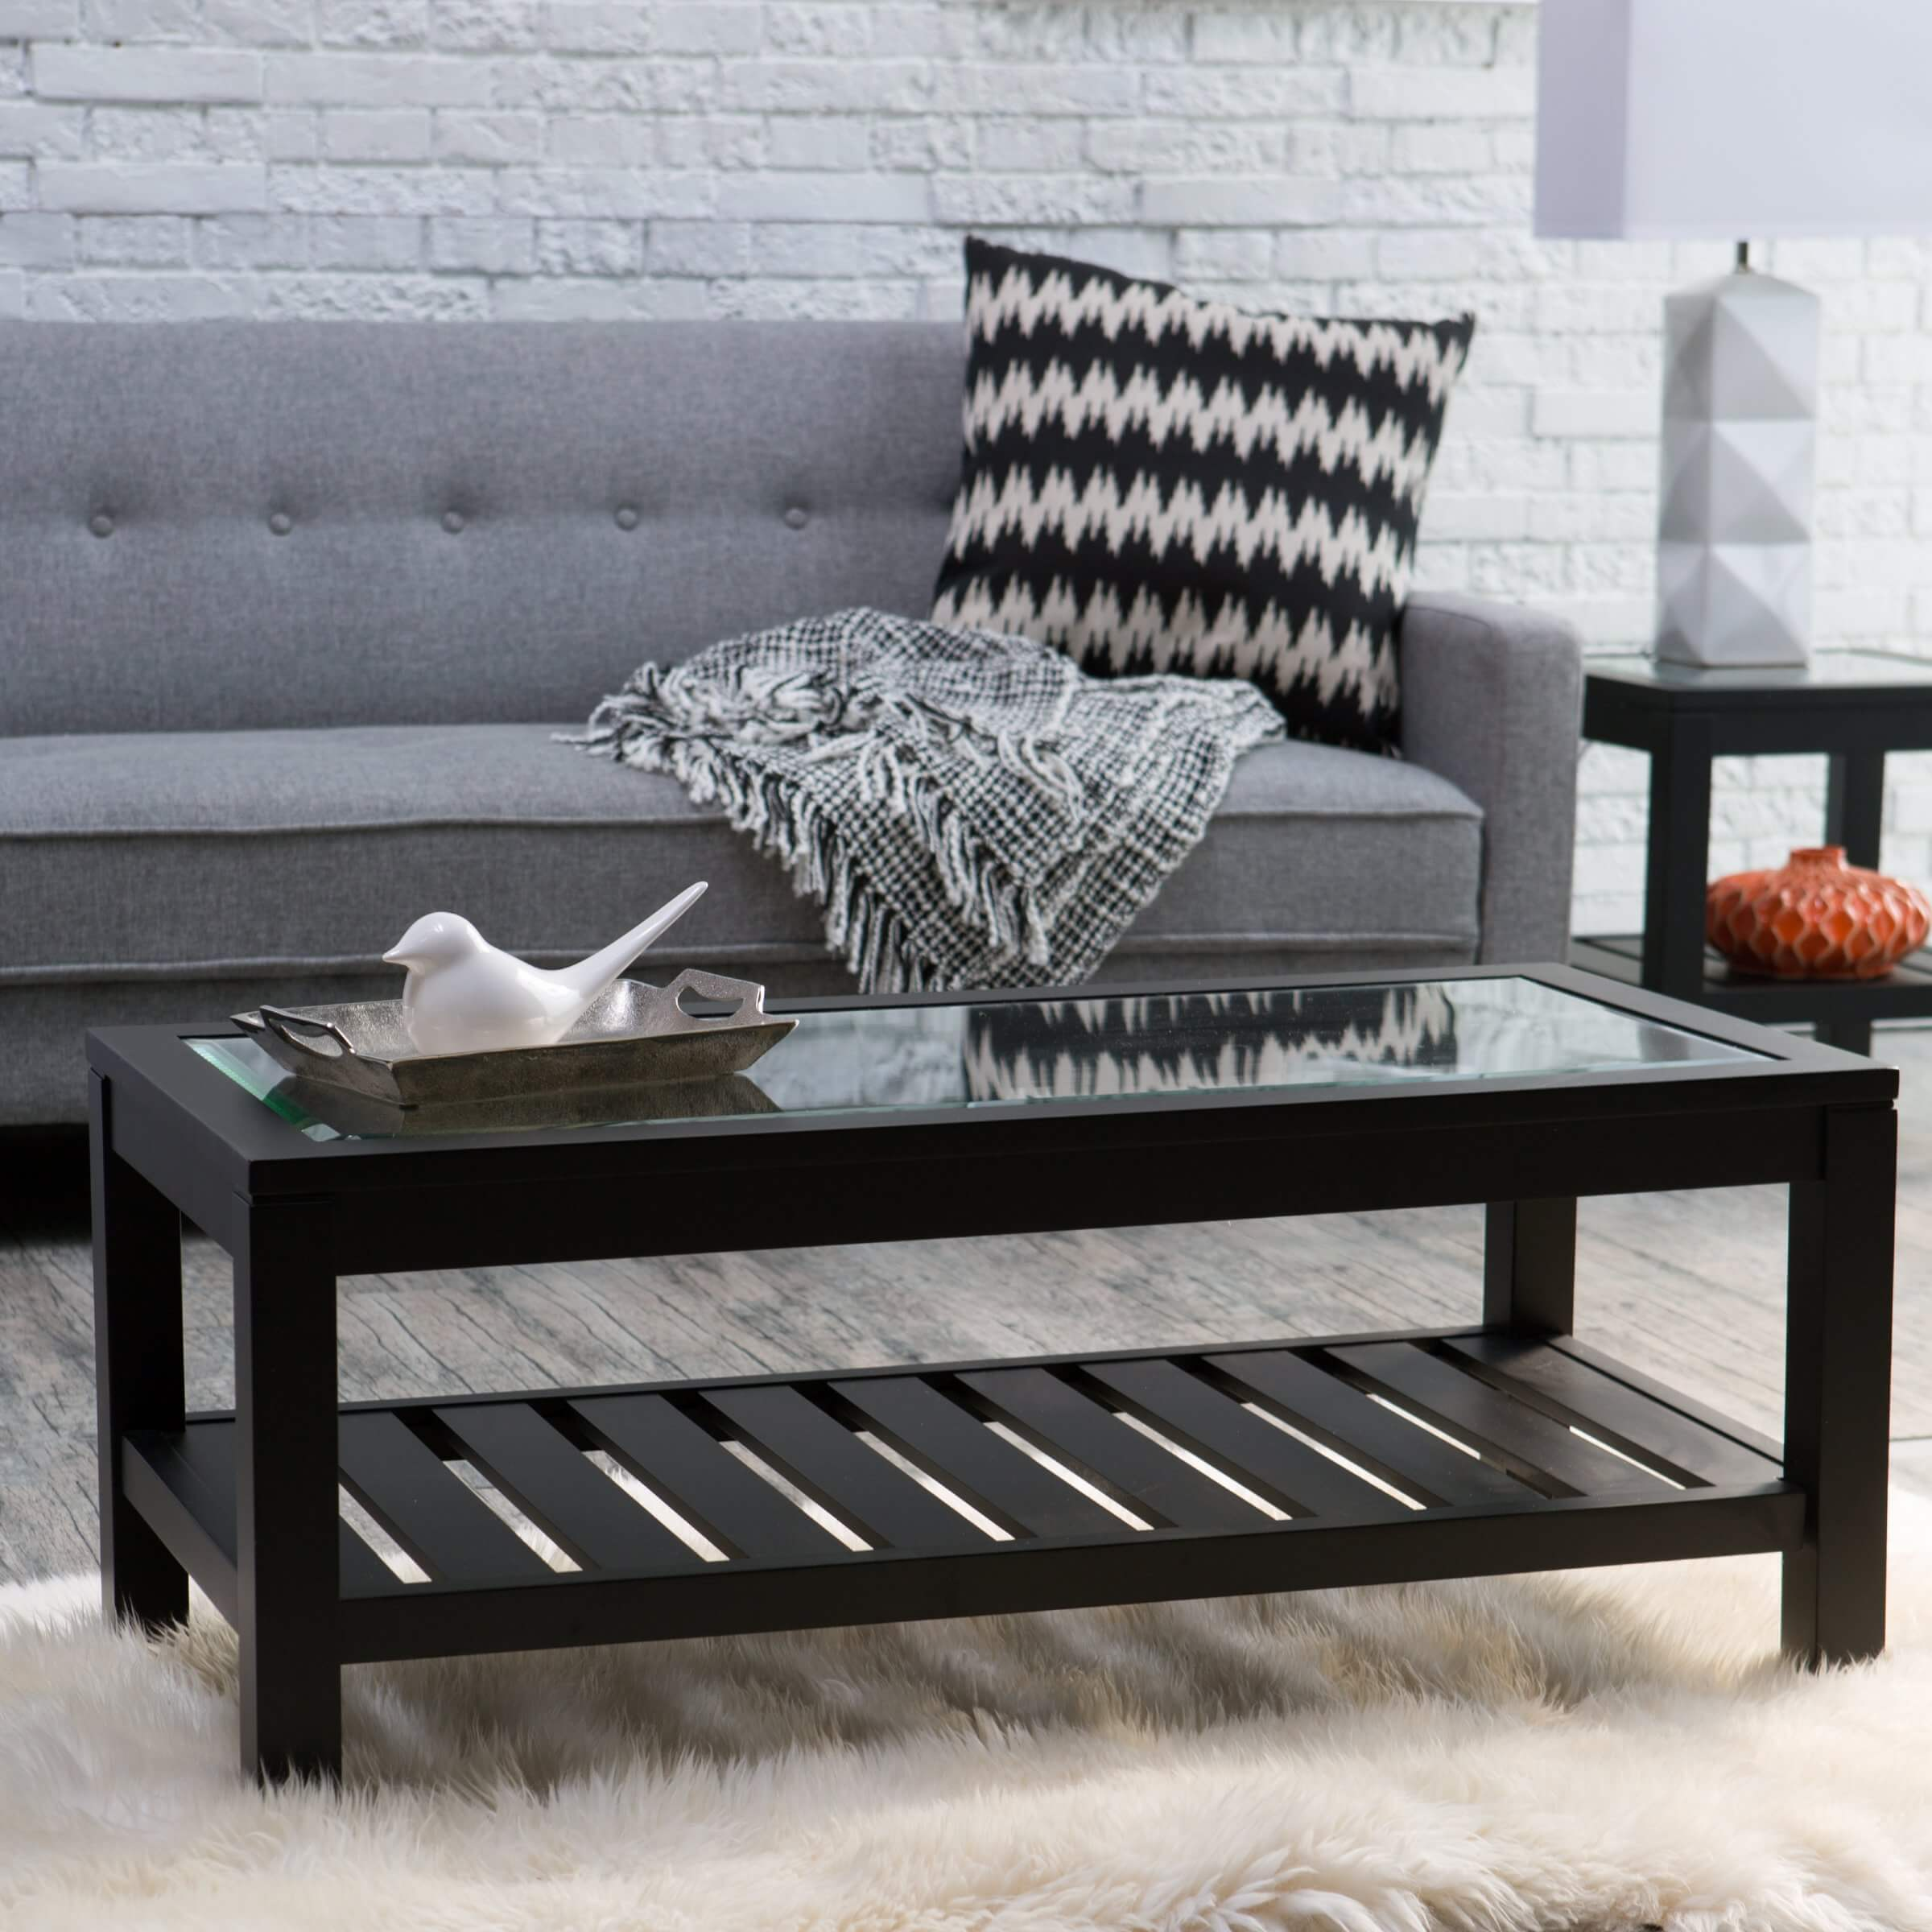 Glass top tables are incredibly popular for a reason: they add visual space, a luxurious sheen, and are stain and water damage proof. Whether metal, wood, or other construction, a glass top adds a sparkle to any table.